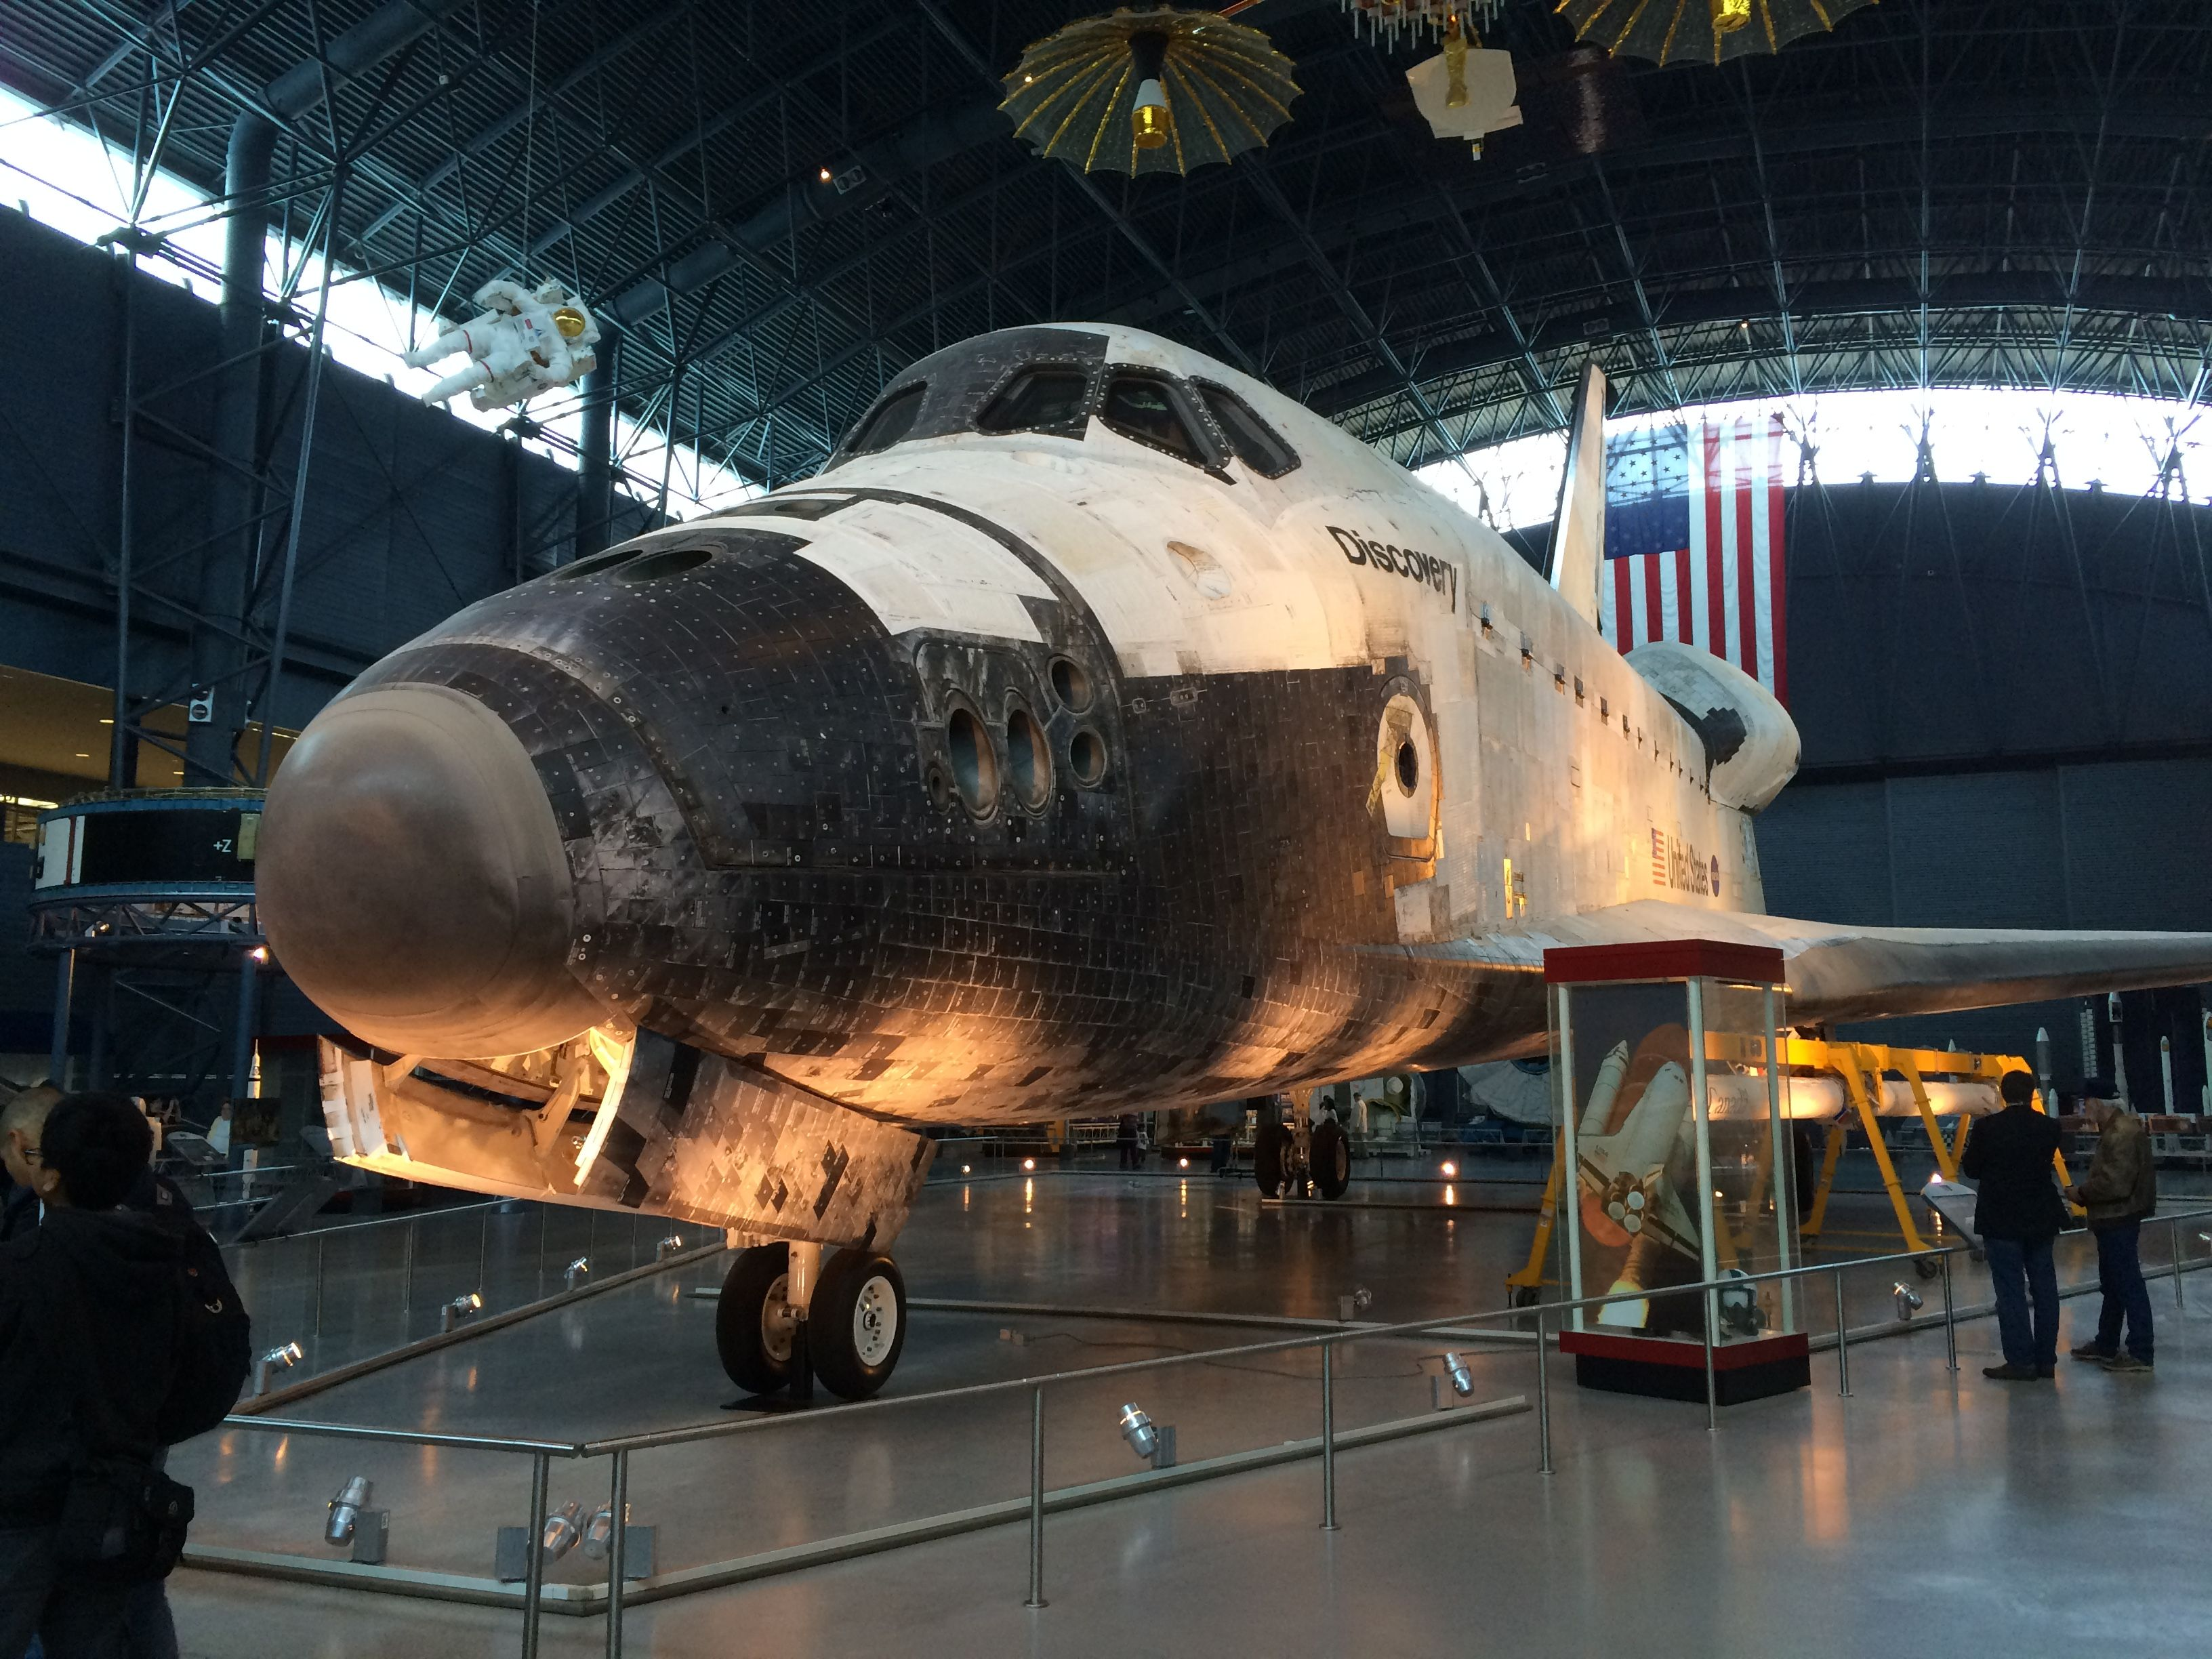 Exhibits in the Steven F. Udvar-Hazy Center - Space Shuttle Discovery